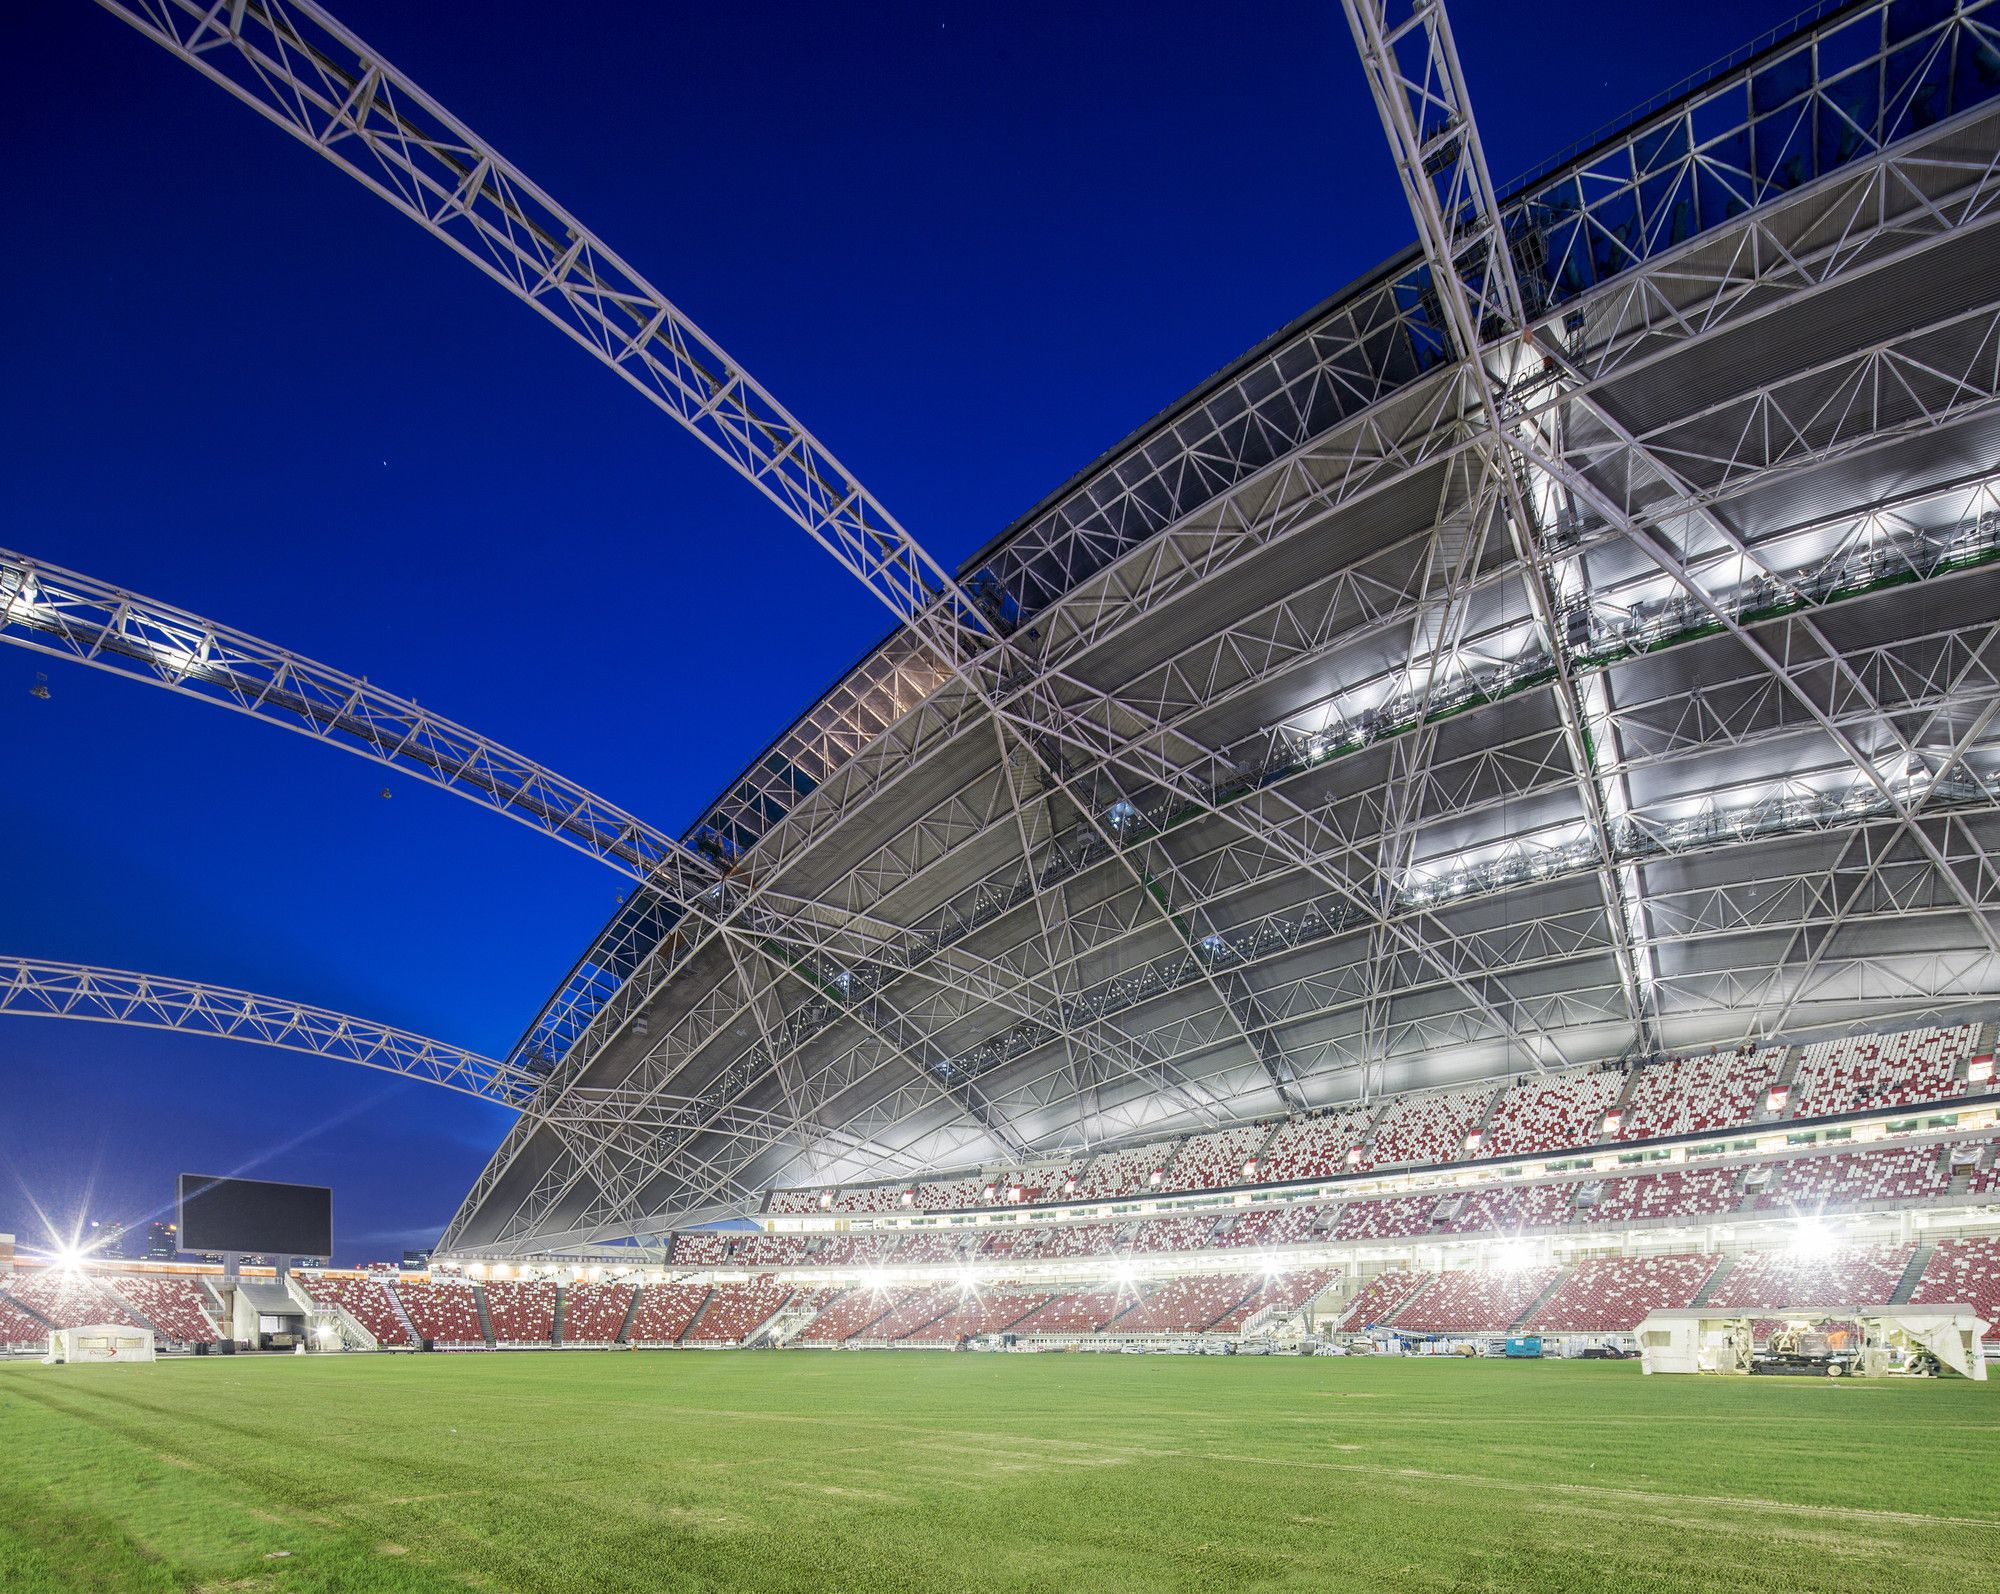 Gallery Of Singapore Sportshub Dparchitects 30 Stadium Architecture National Stadium Dp Architects